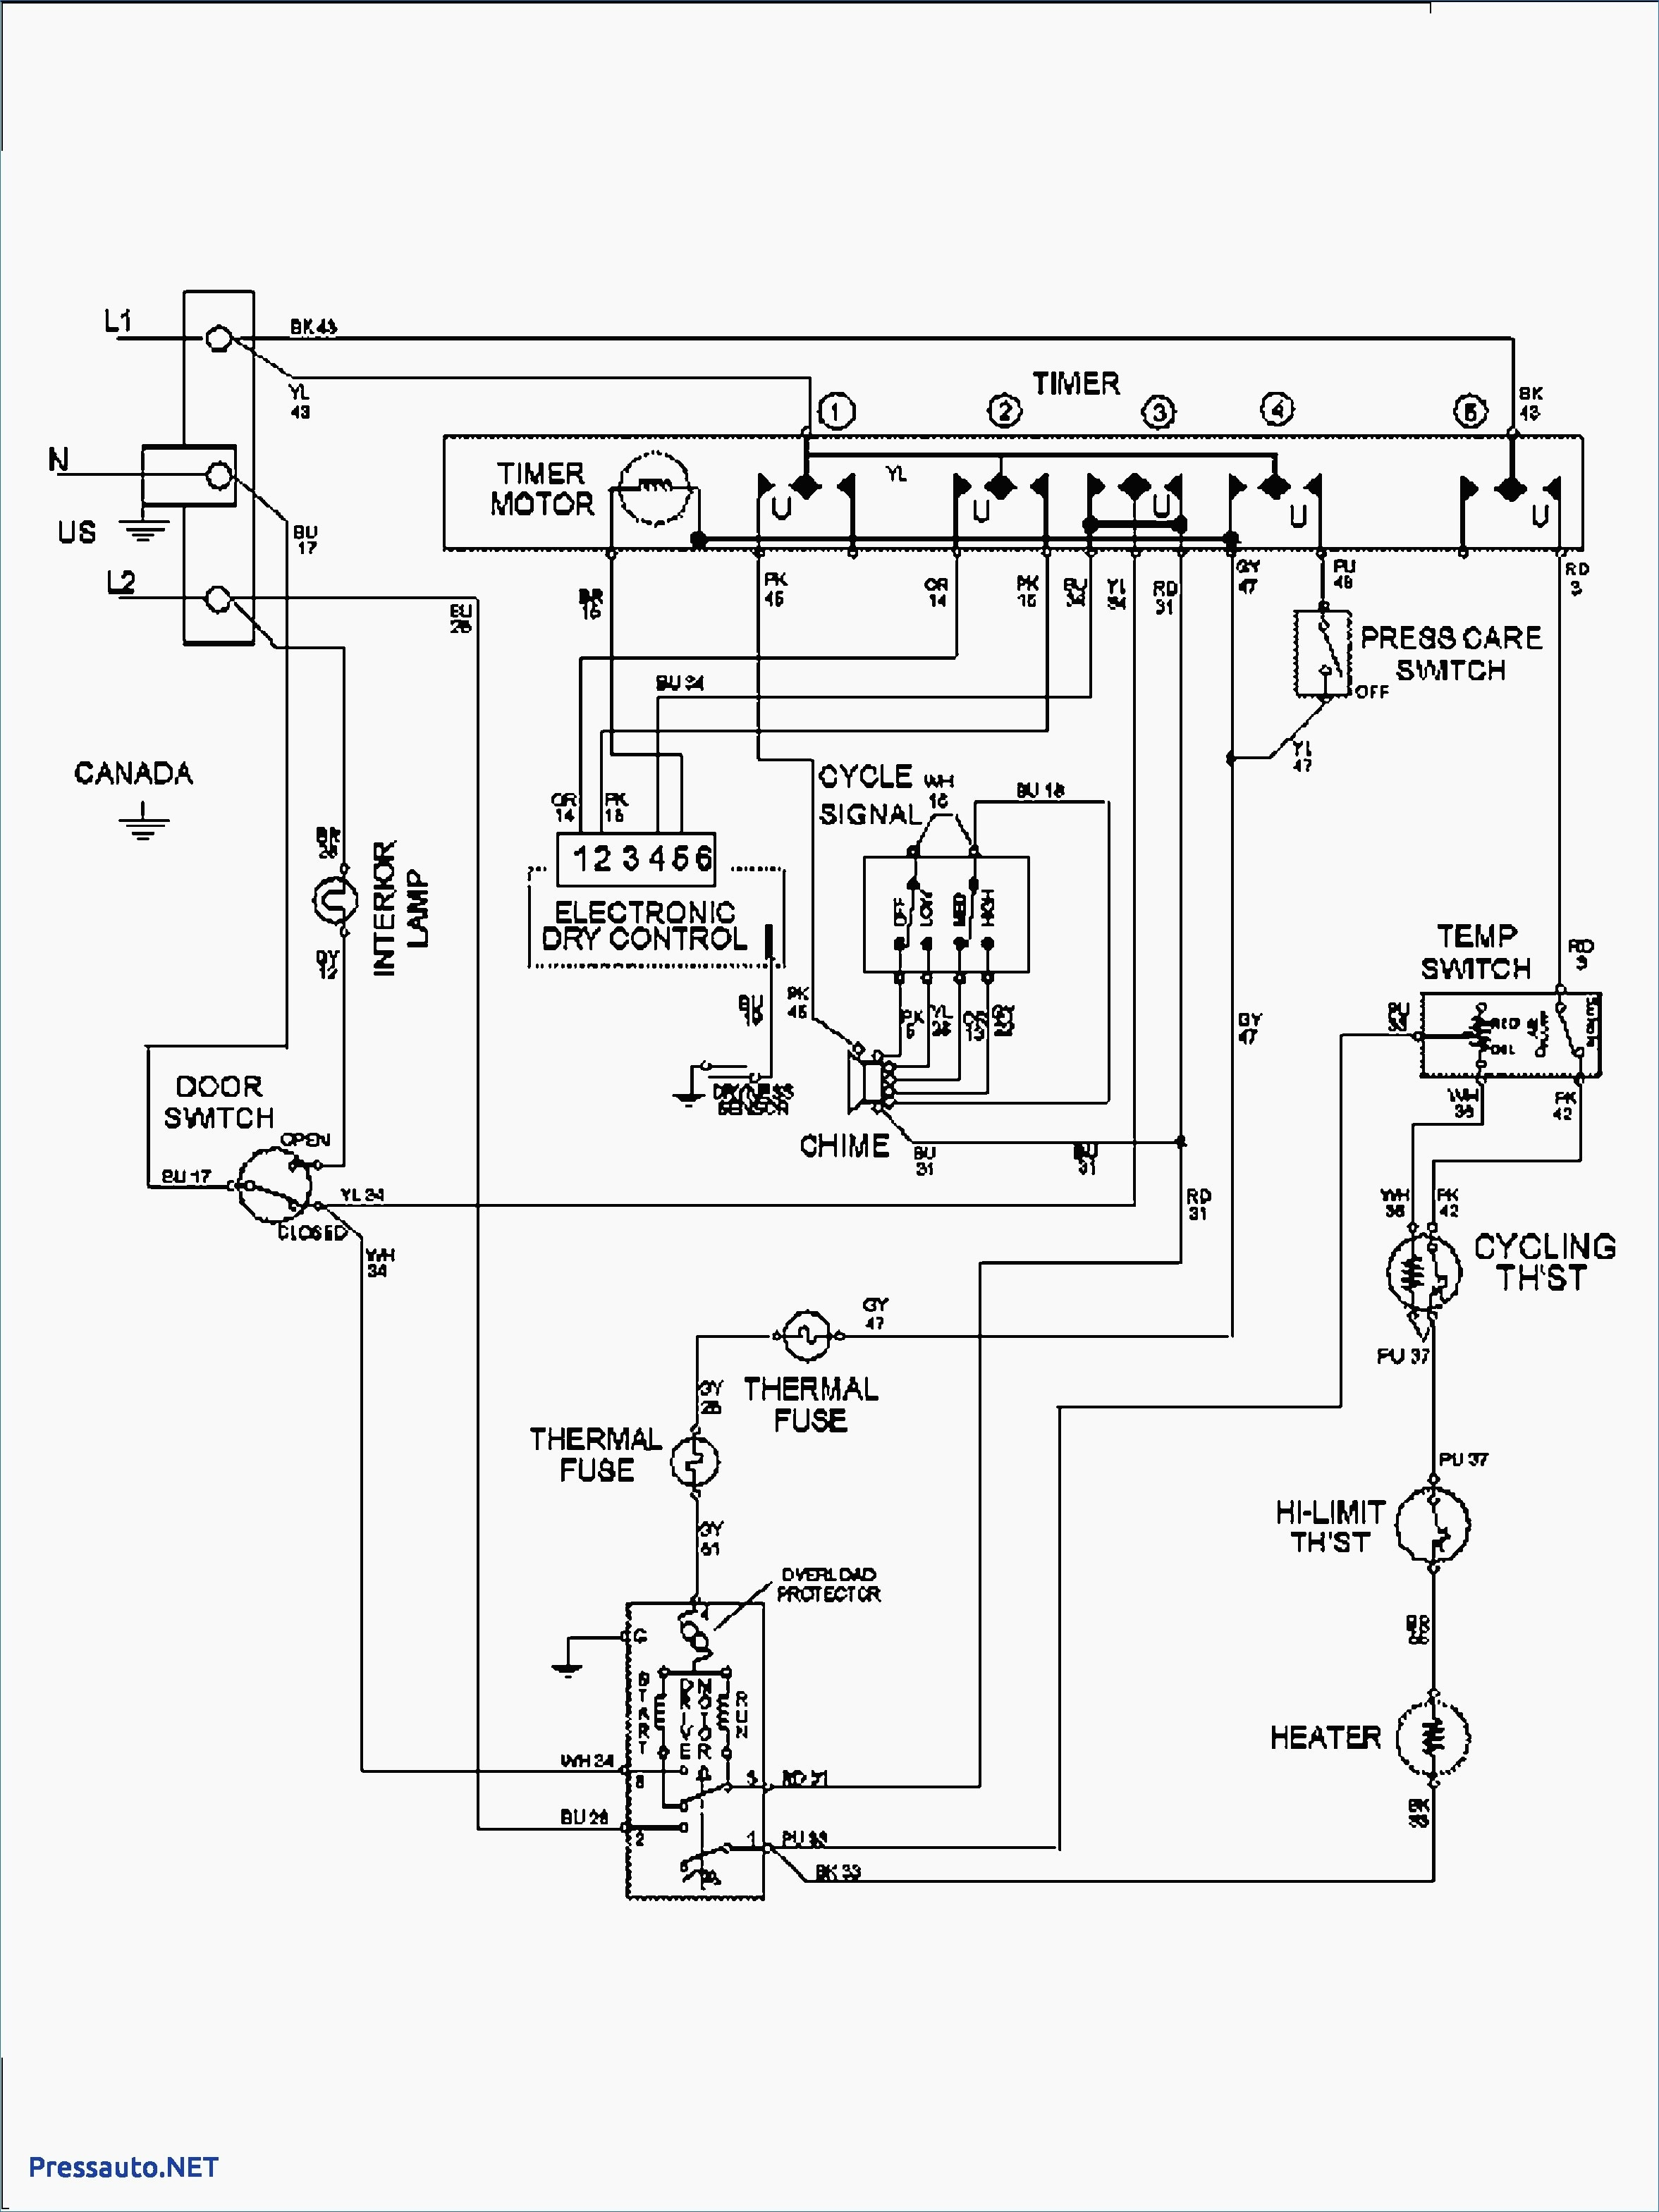 wiring diagram for a whirlpool dryer Collection-Wiring Diagram Appliance Dryer Inspirationa Amana Dryer Wiring Diagram Fresh for Whirlpool Unbelievable Chromatex 18-h